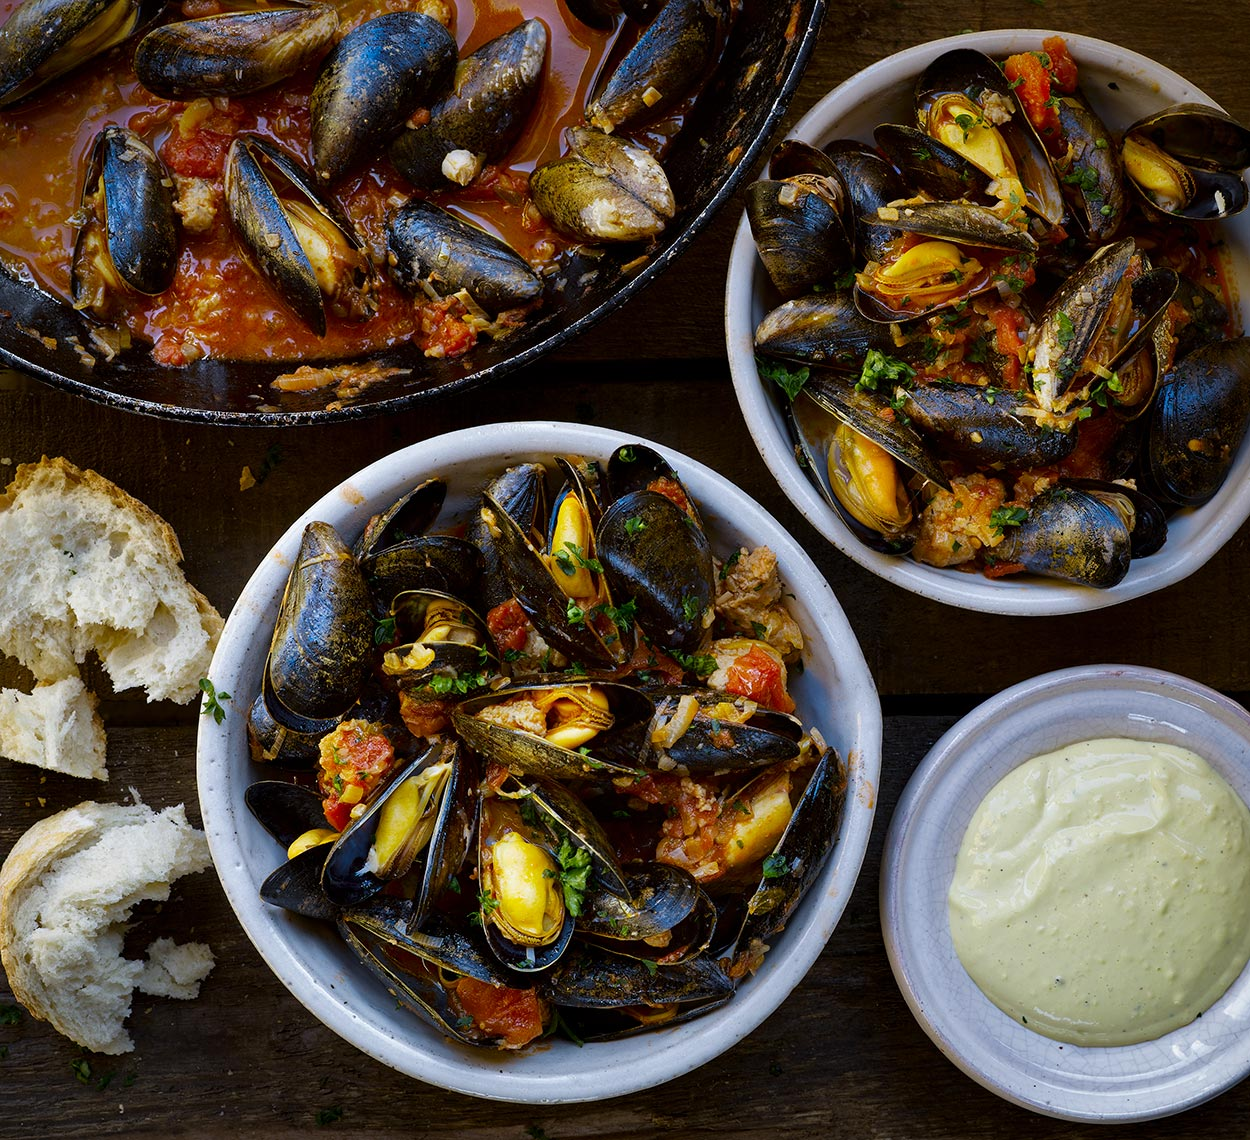 River Cottage Mussels | Colin Campbell - Food Photographer